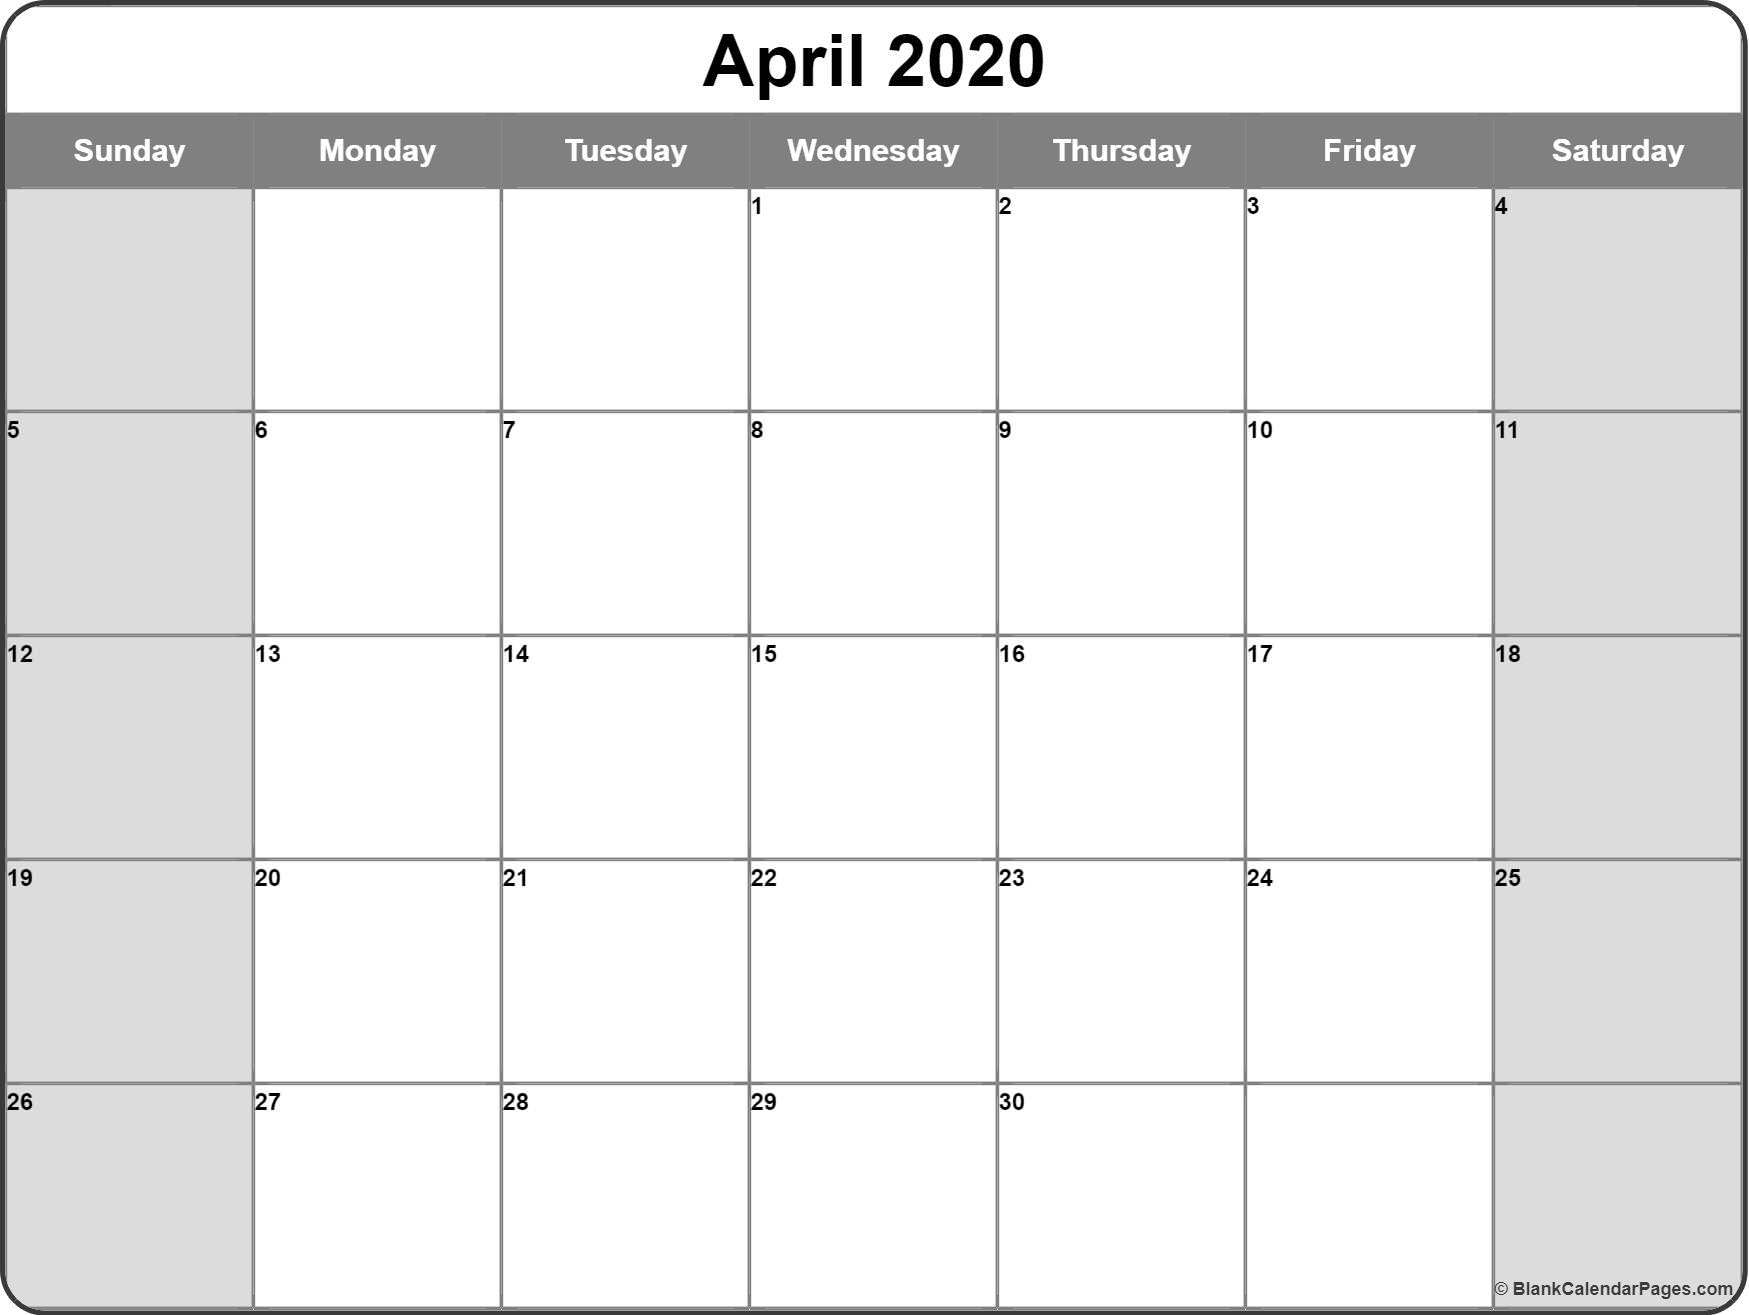 April 2020 Calendar | Free Printable Monthly Calendars intended for Printable Fill In Calendar By Month